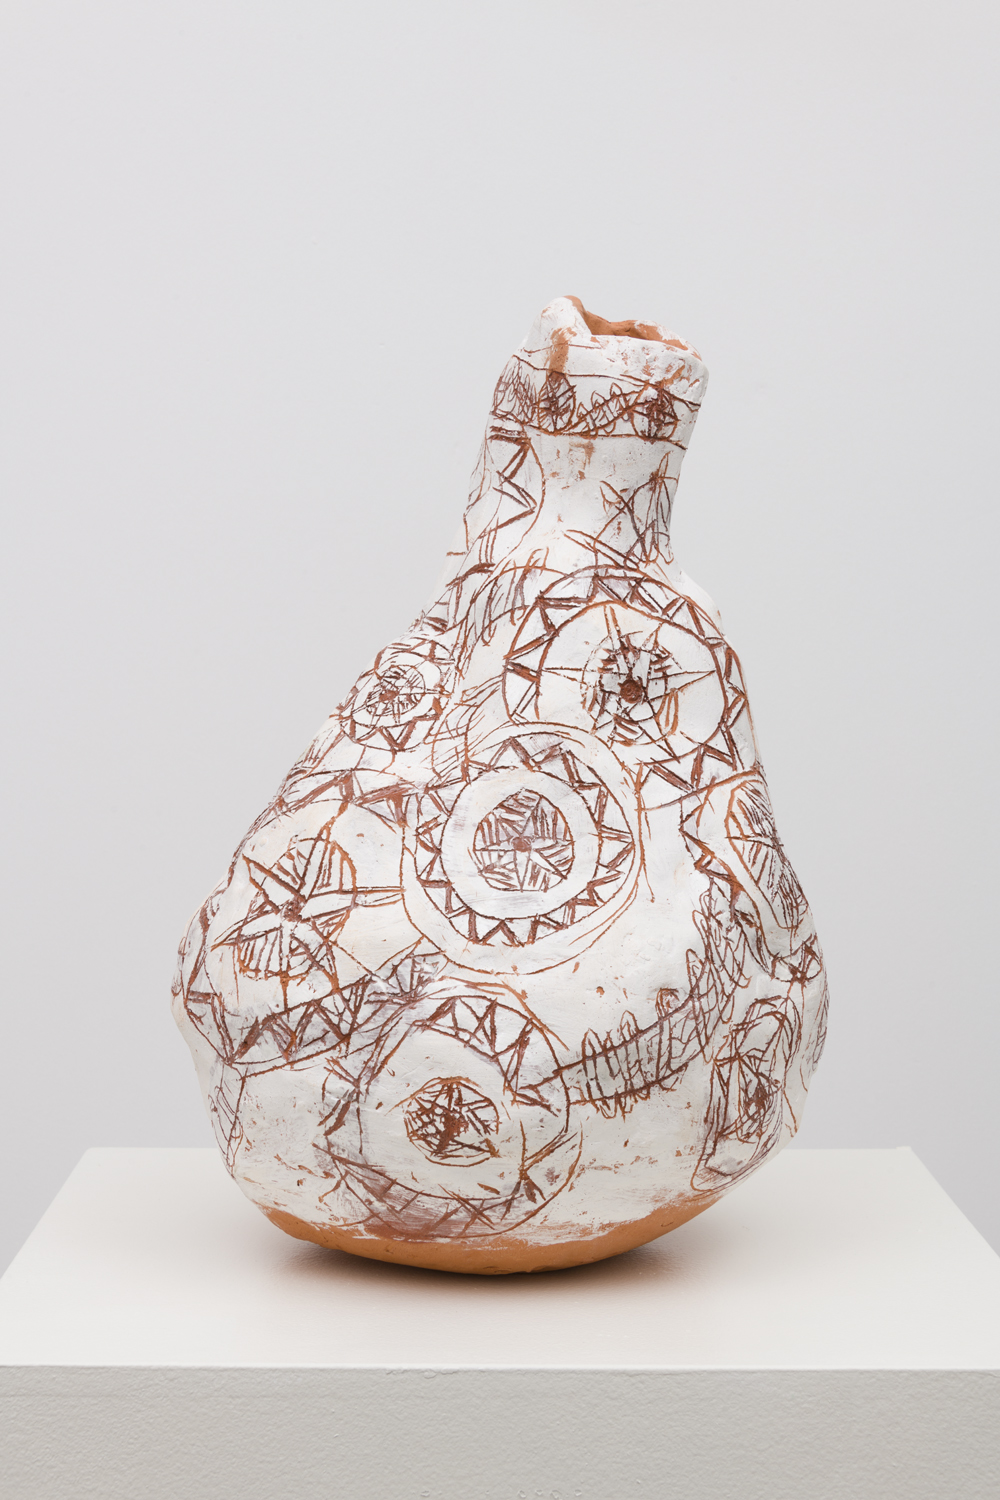 Jennifer Rochlin  Ropes and Shield Patter, 2018  Glazed Ceramic  19 x 13 x 13 inches